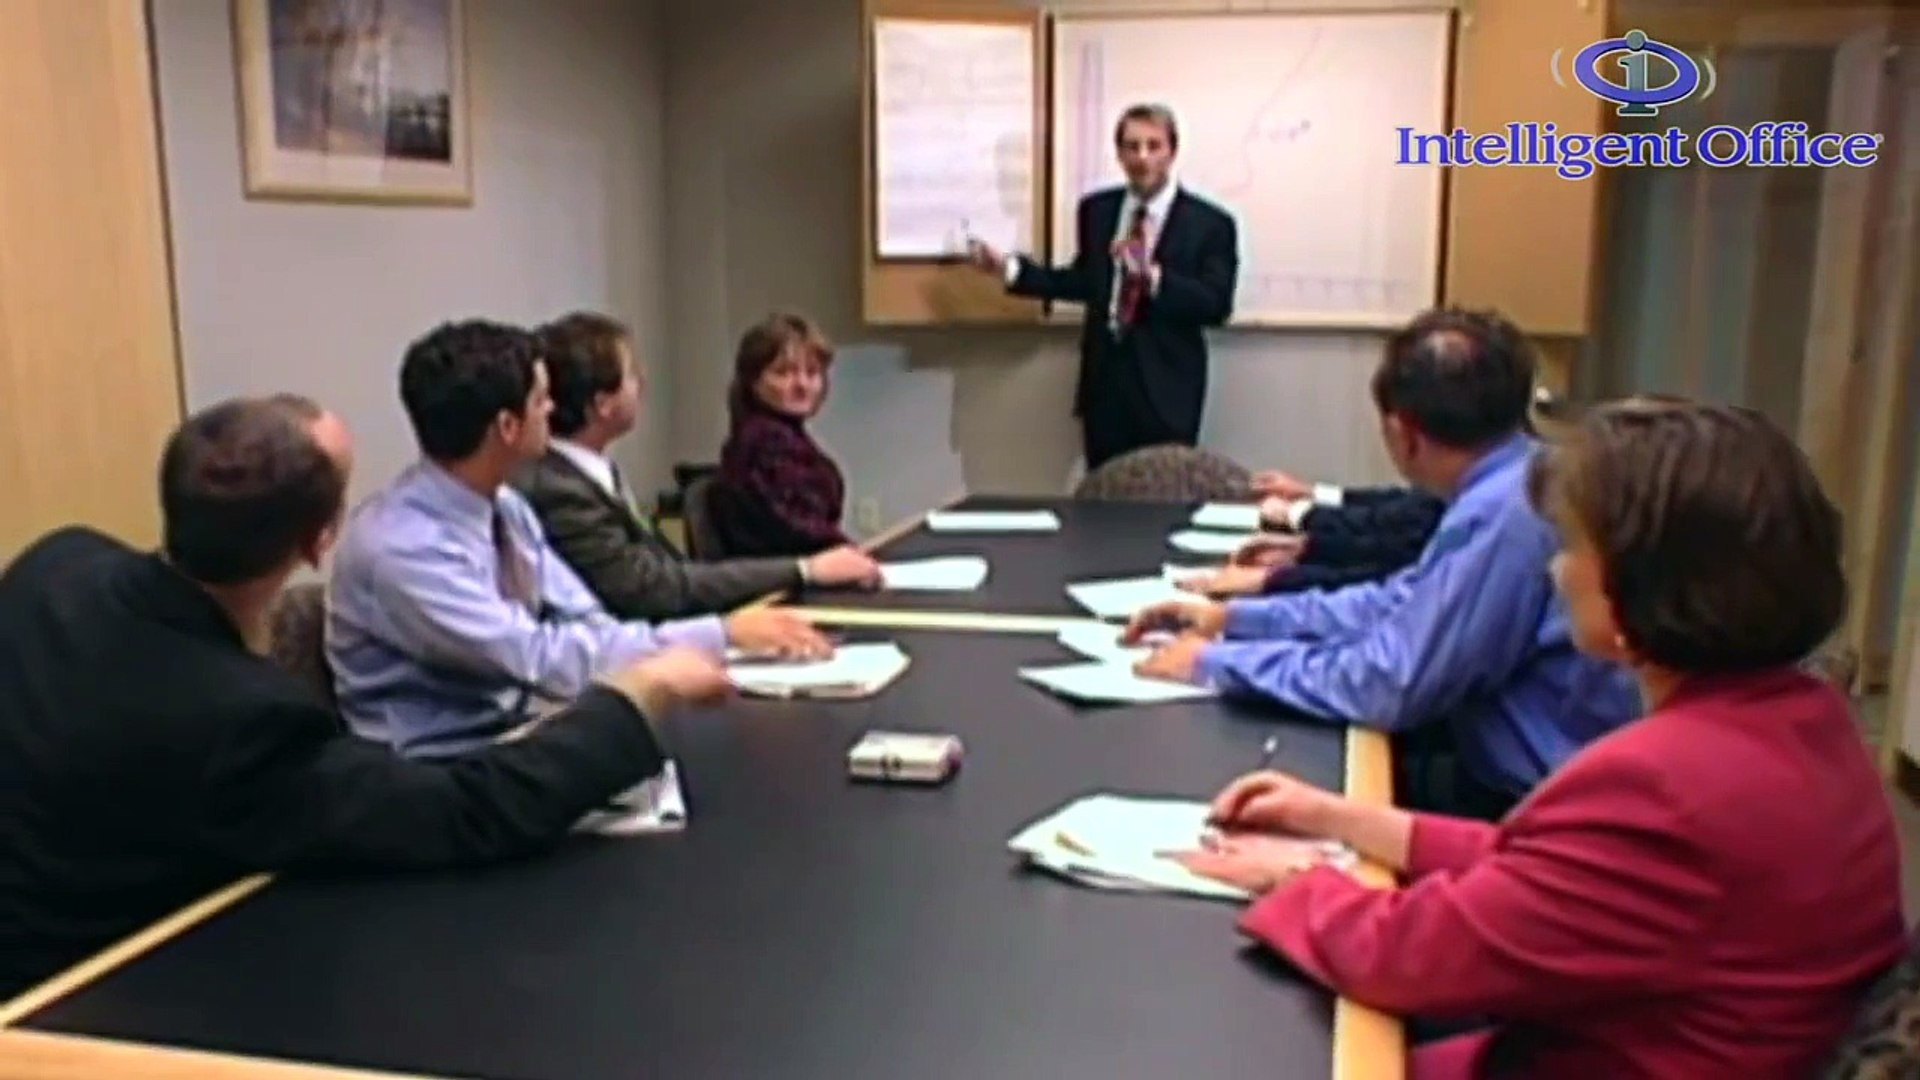 Virtual Office - Video About Virtual Office Meeting Space & Executive Office Space